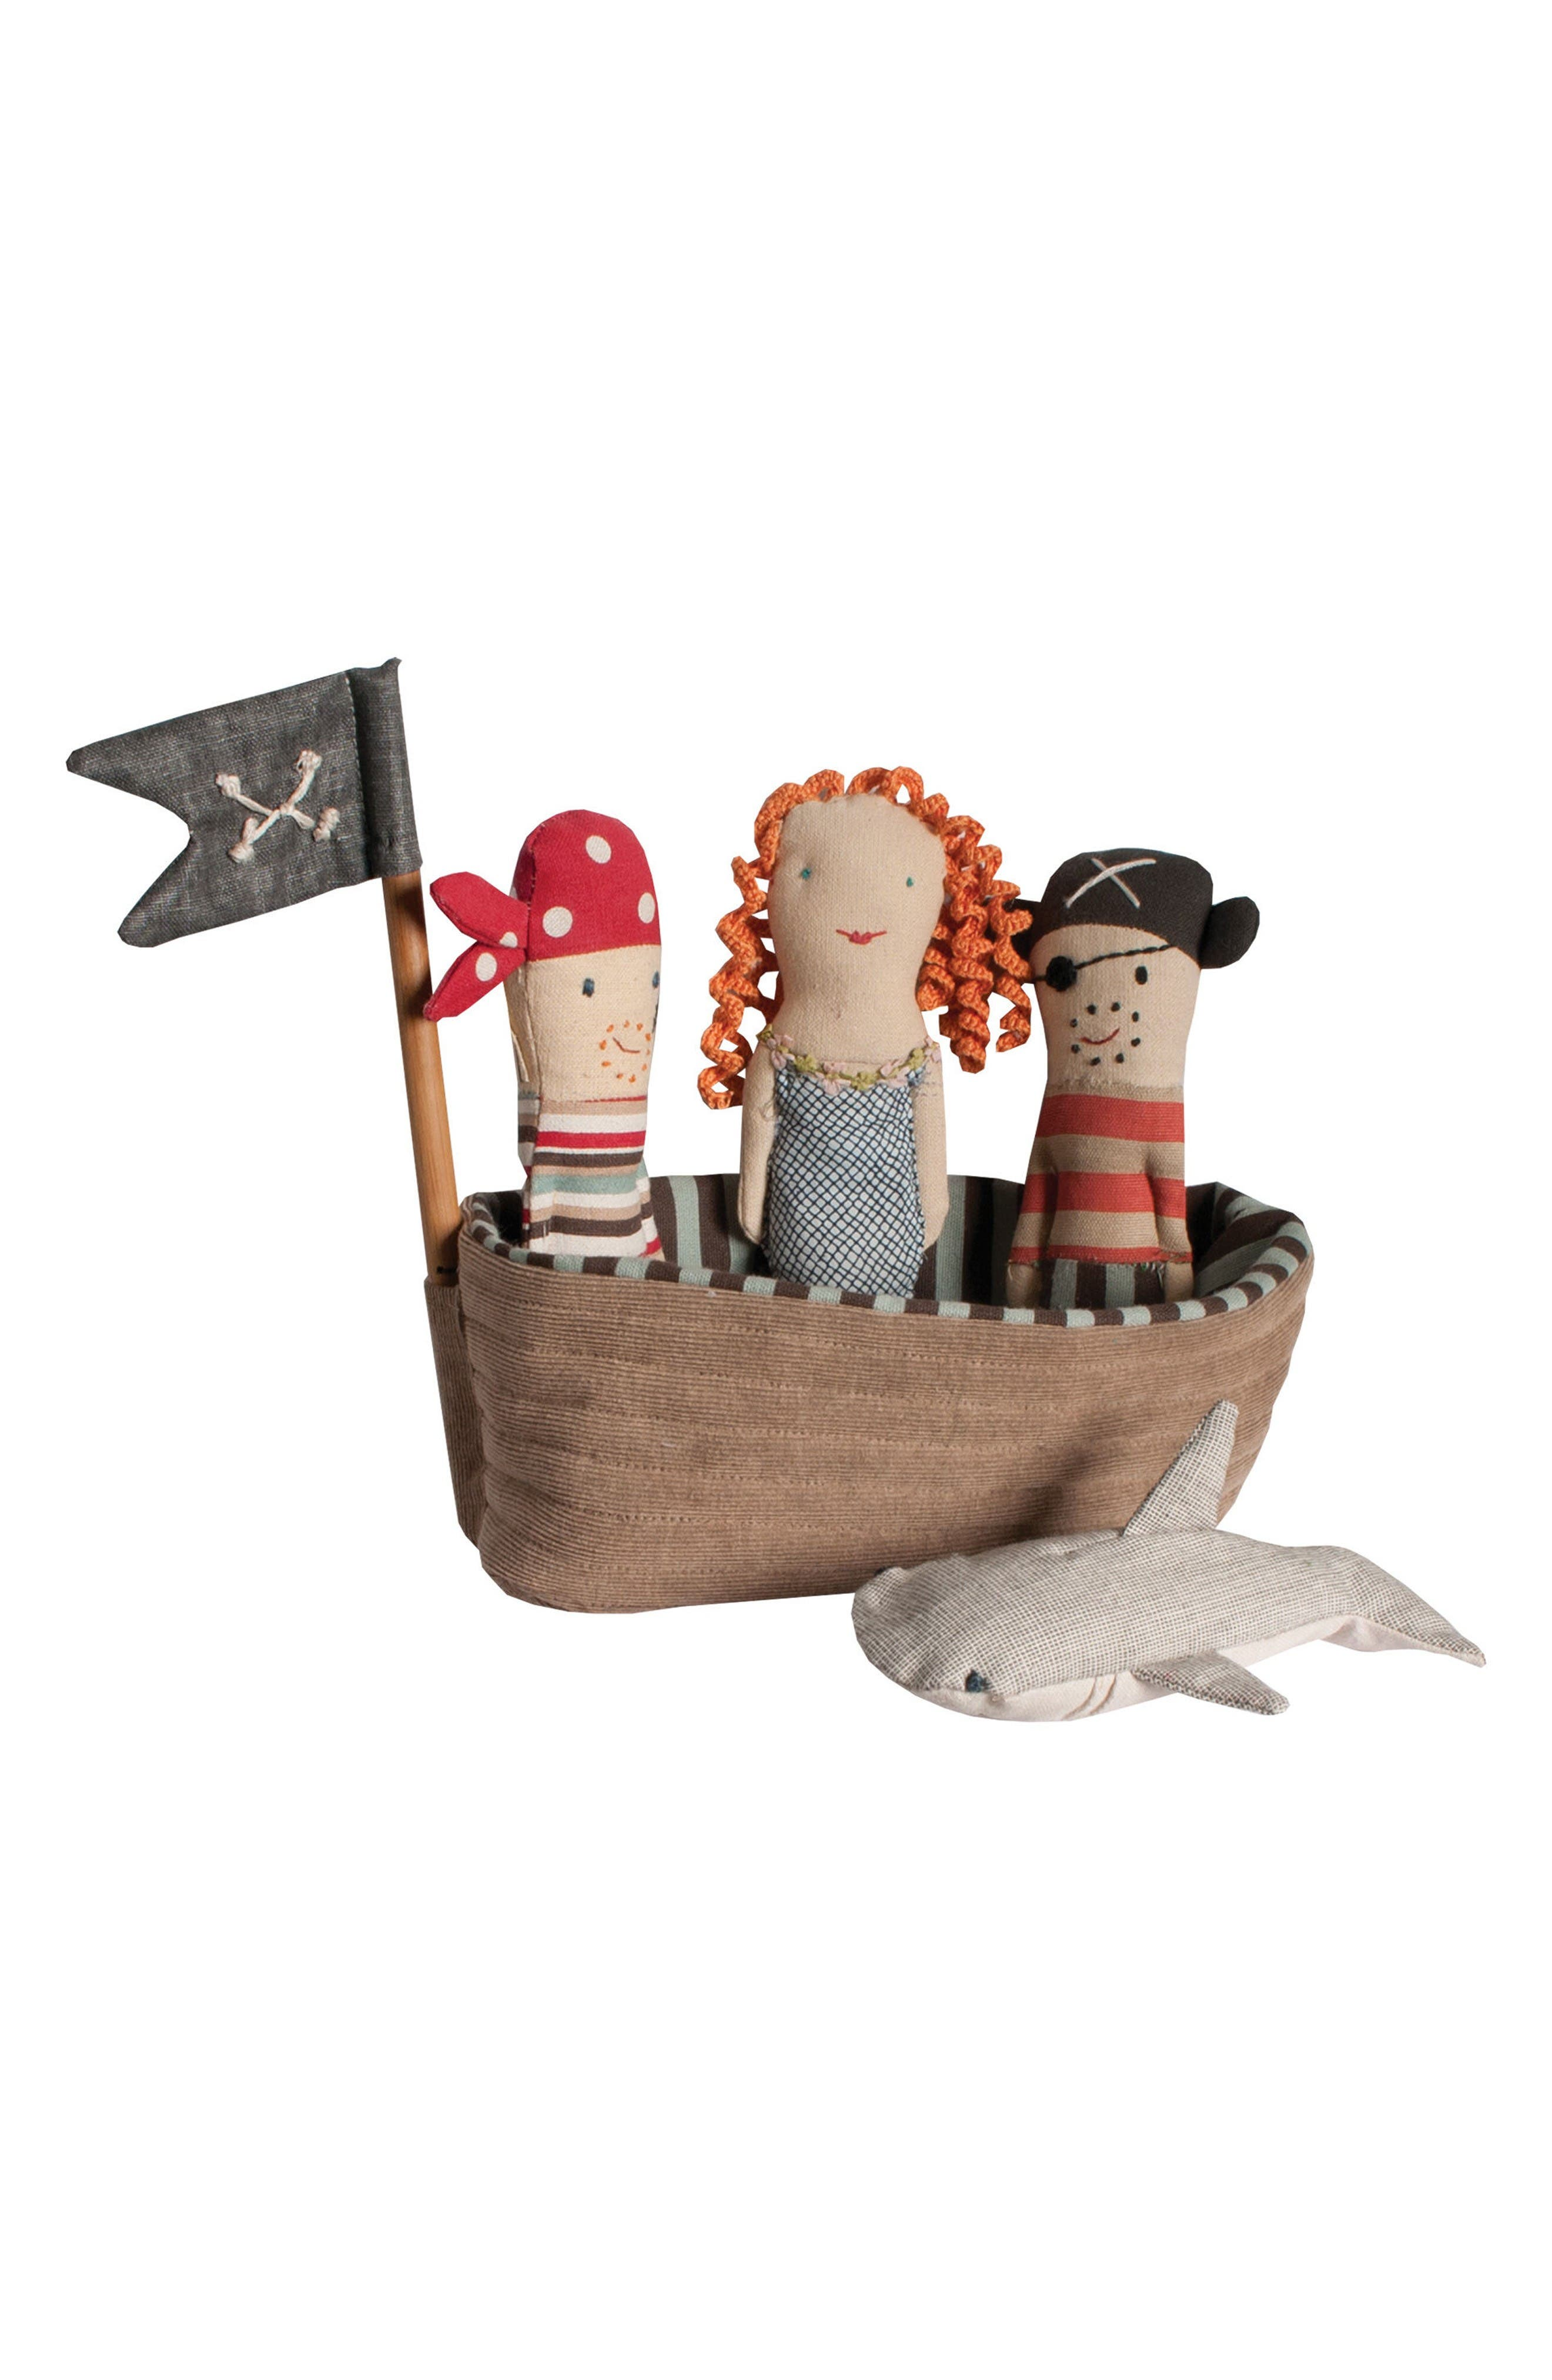 Pirate Ship Rattle 5-Piece Play Set,                         Main,                         color, Brown